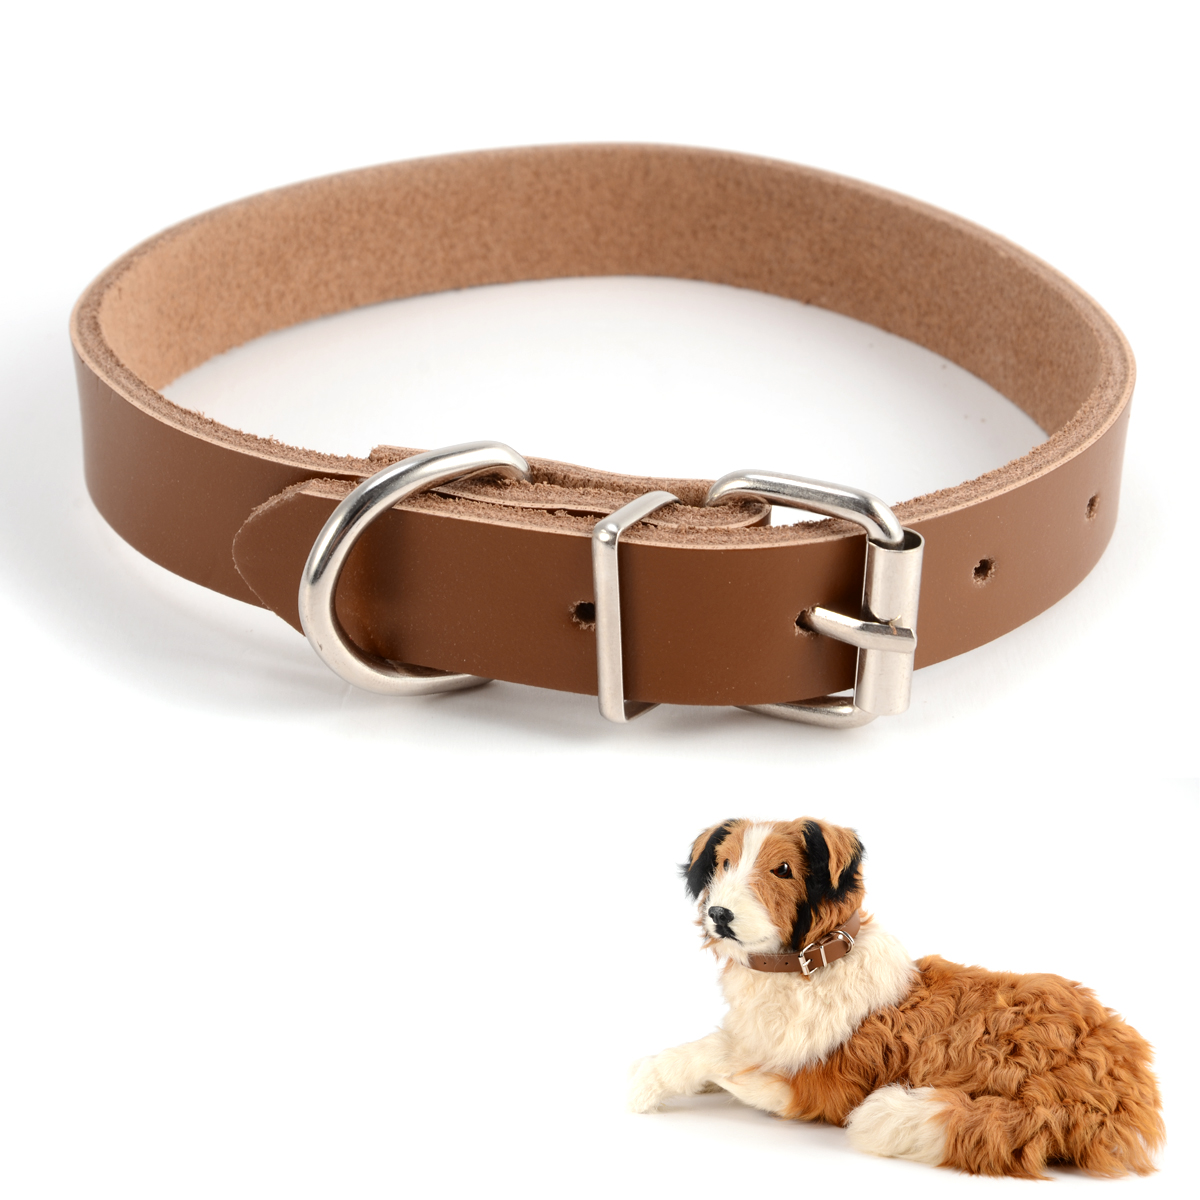 A stylish dog collar brings out the personality of any pet. Whether picking out a pink plaid collar or a striped dog harness, pet owners and canines alike will adore the wonderful selection of accessories available at Sears. Give your pet a new look with a fashionable and functional dog leash and dog collar.